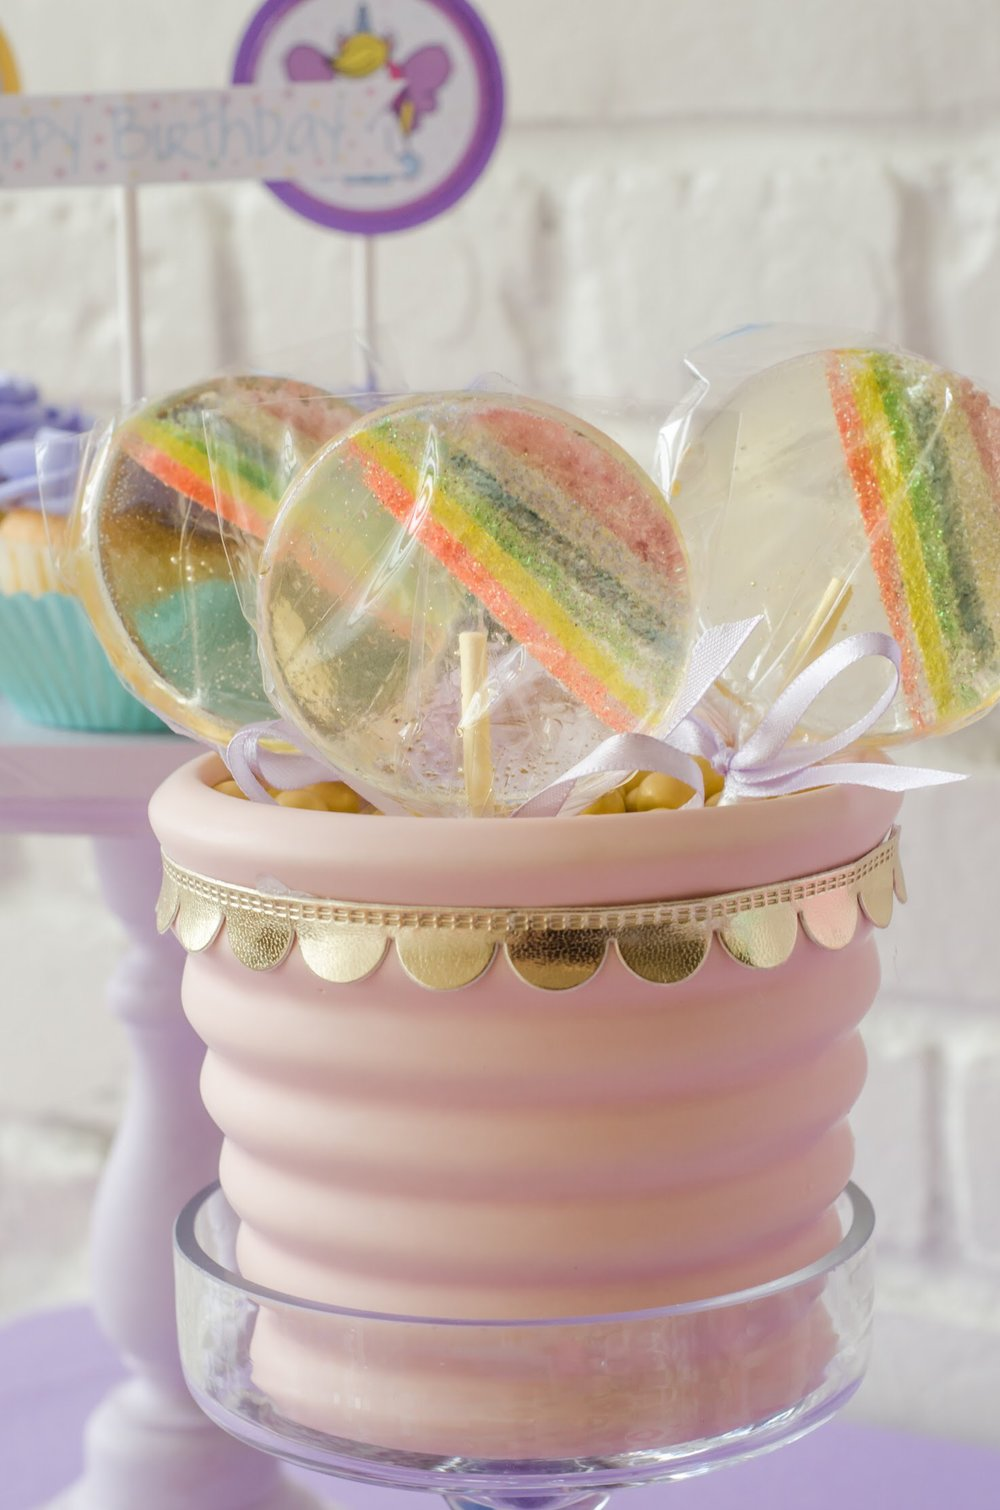 Rainbow lollipops are the perfect addition to this unicorn party created by Mint Event Design www.minteventdesign.com #unicornparty #lollipops #birthdayparty #birthdaypartyideas #pastelrainbow